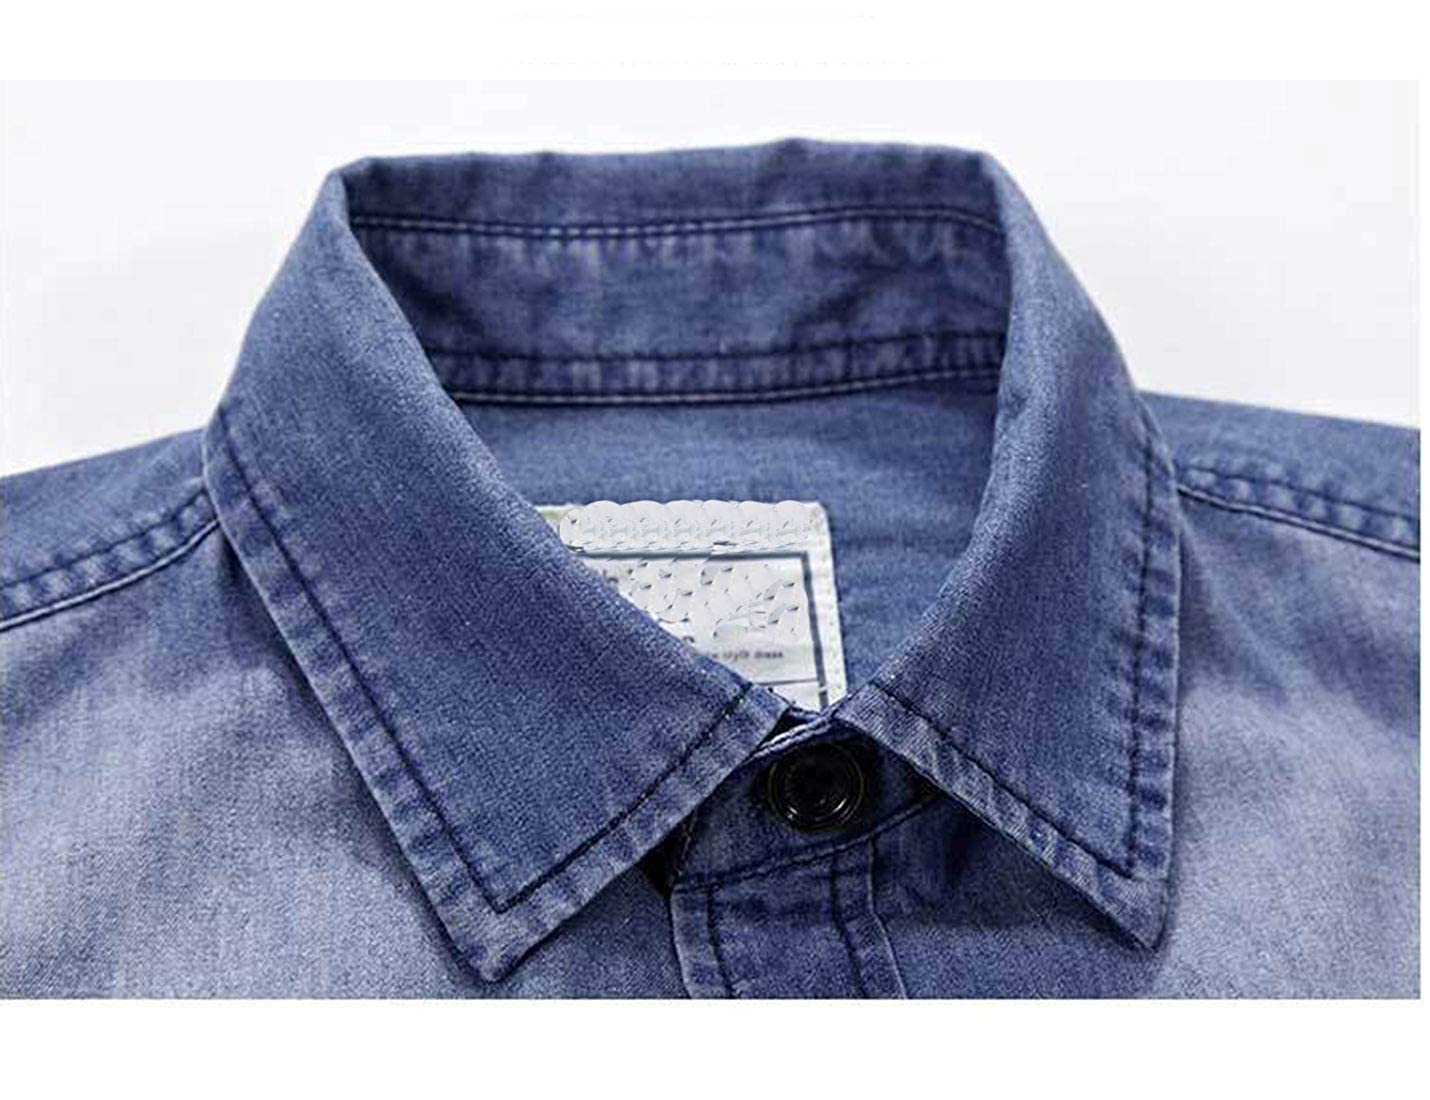 Omoone Mens Classic Long Sleeve Ruged Wear Washed Western Denim Shirt Tops